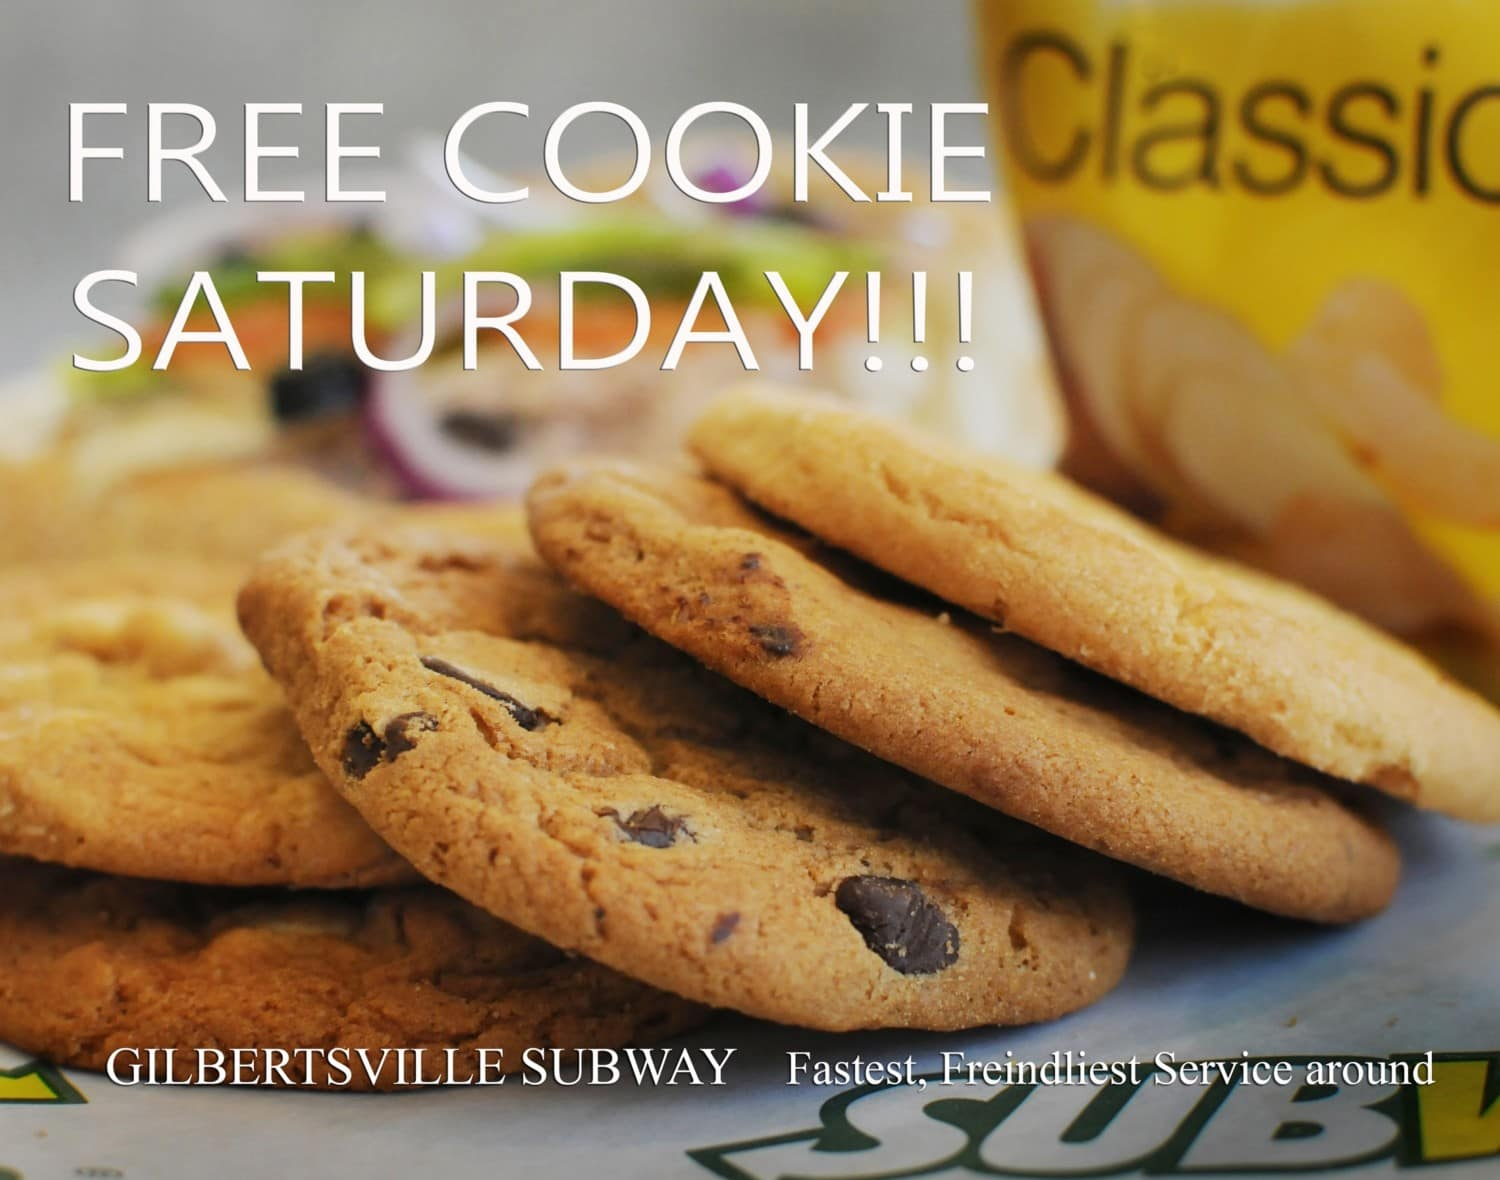 Subway Cookies Gilbertsville